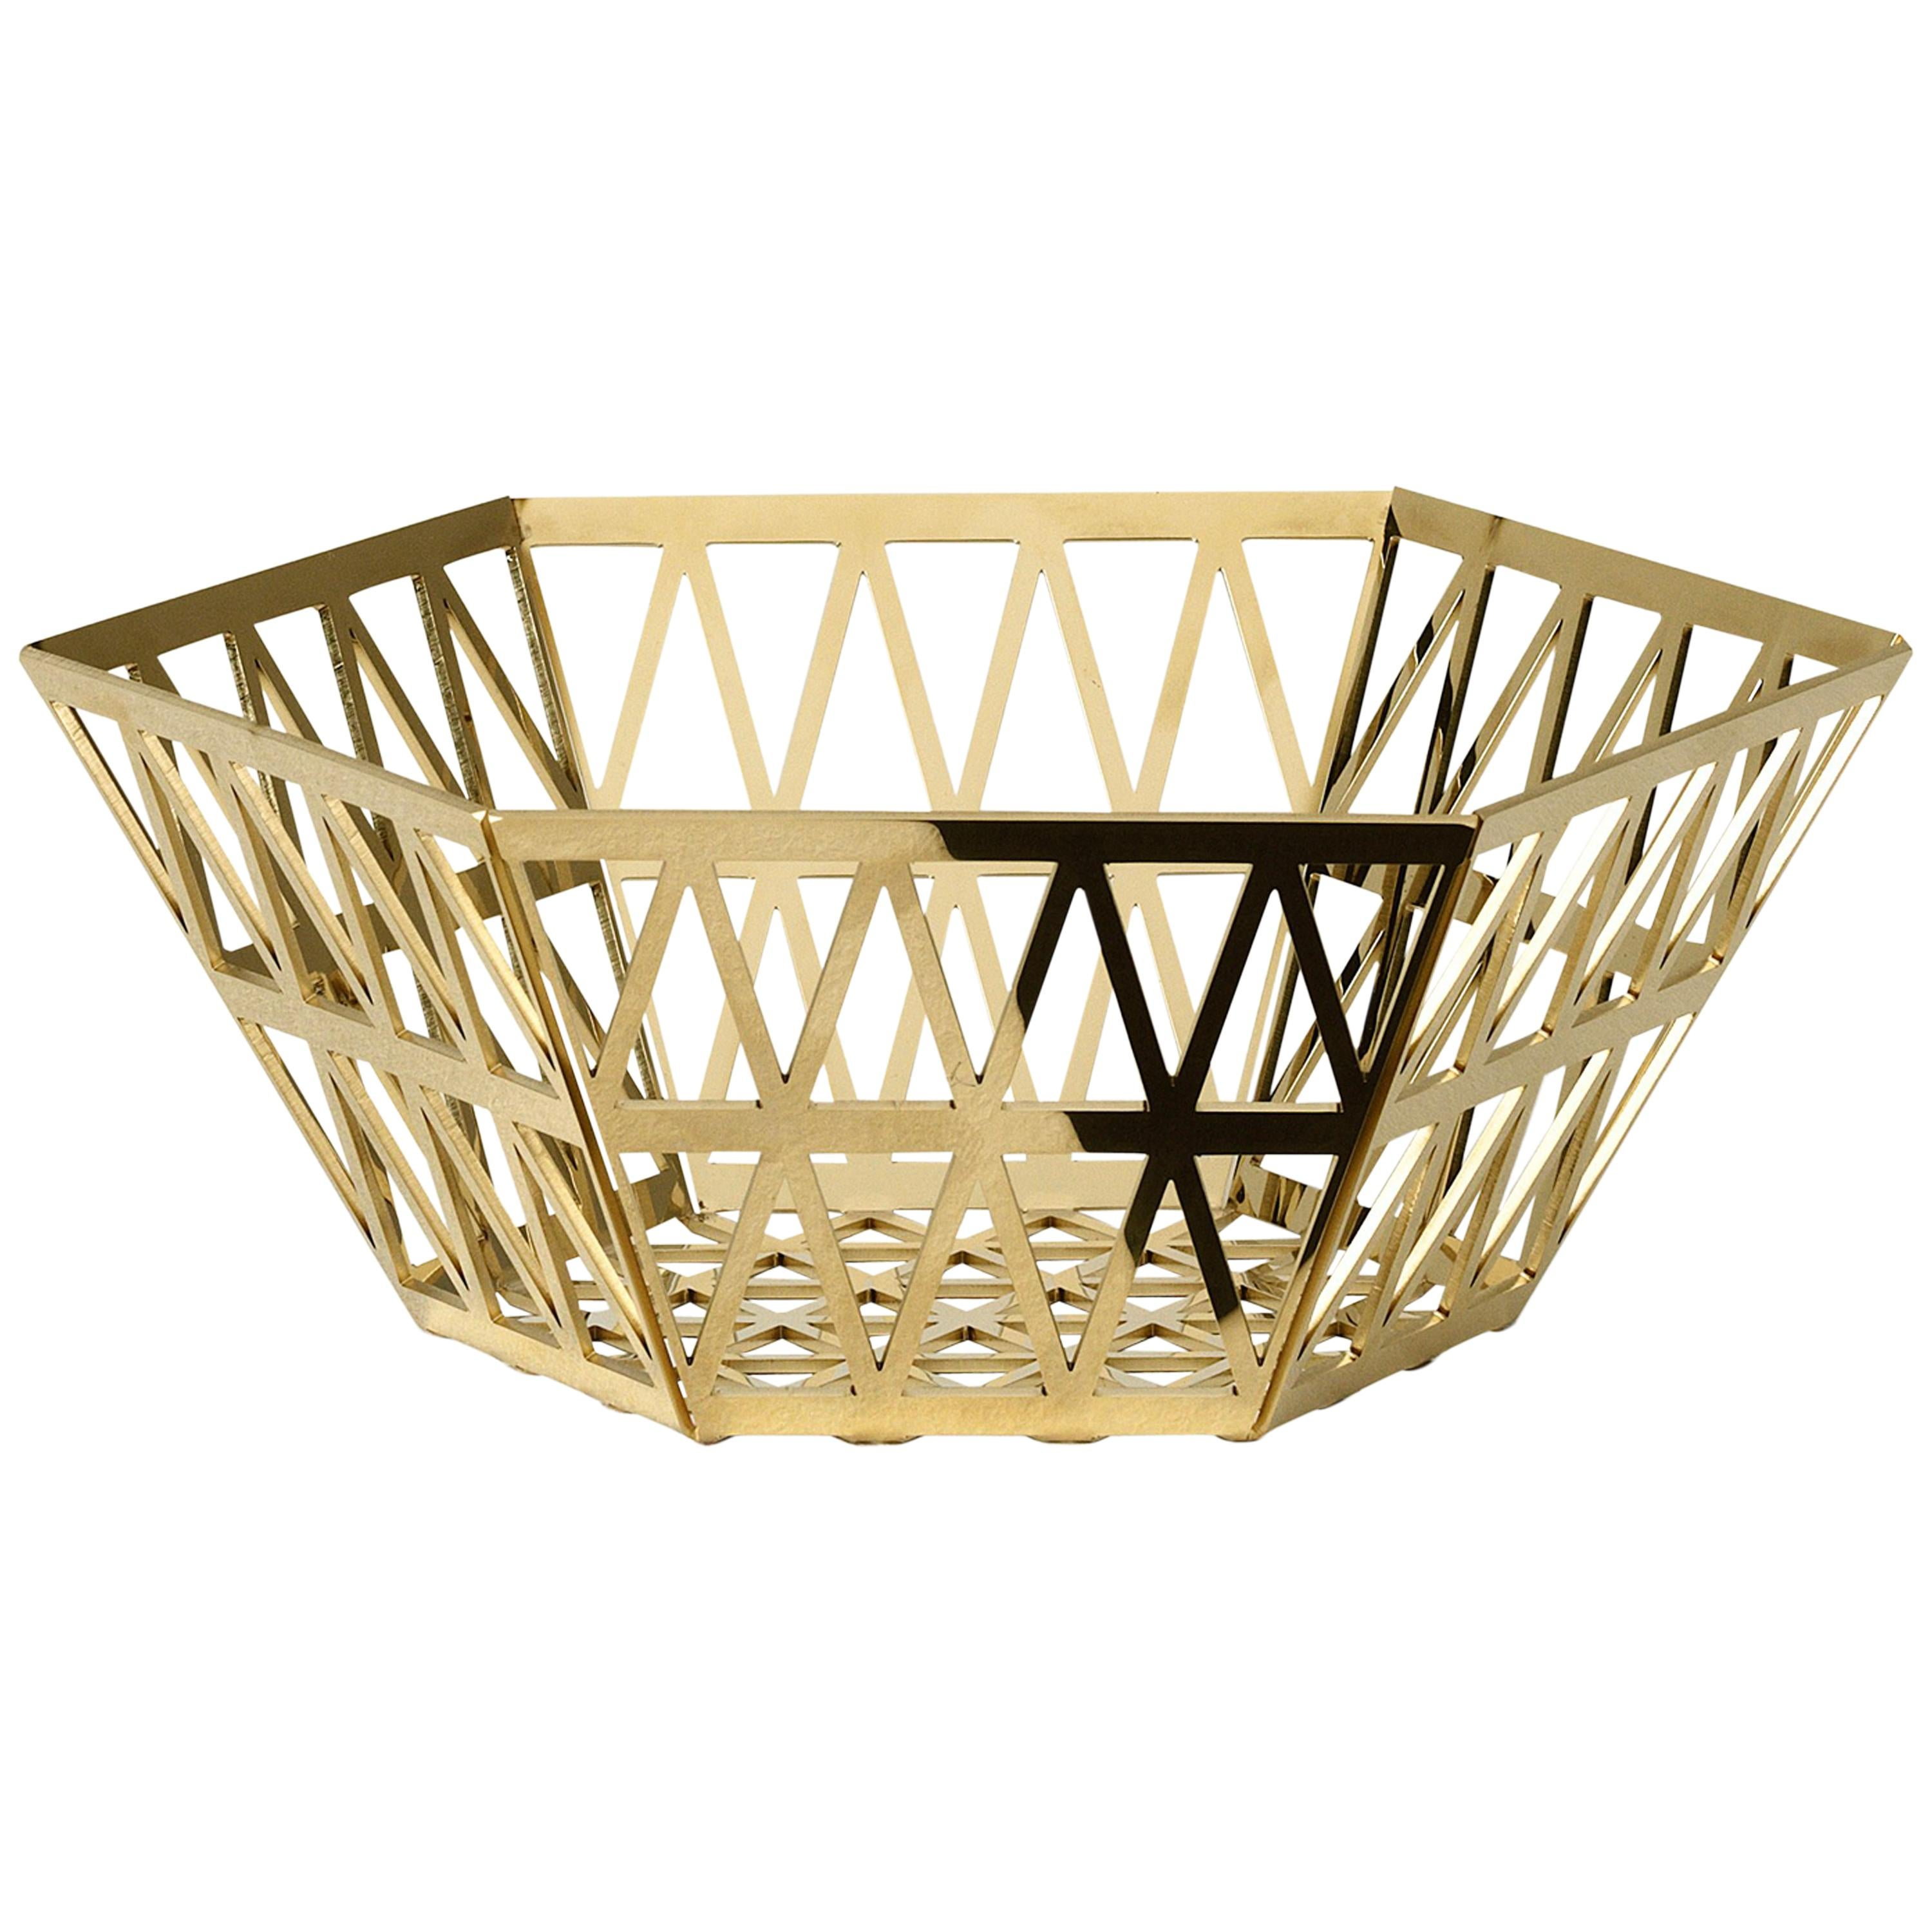 Ghidini 1961 Tip Top Tall Tray in Gold by Richard Hutten